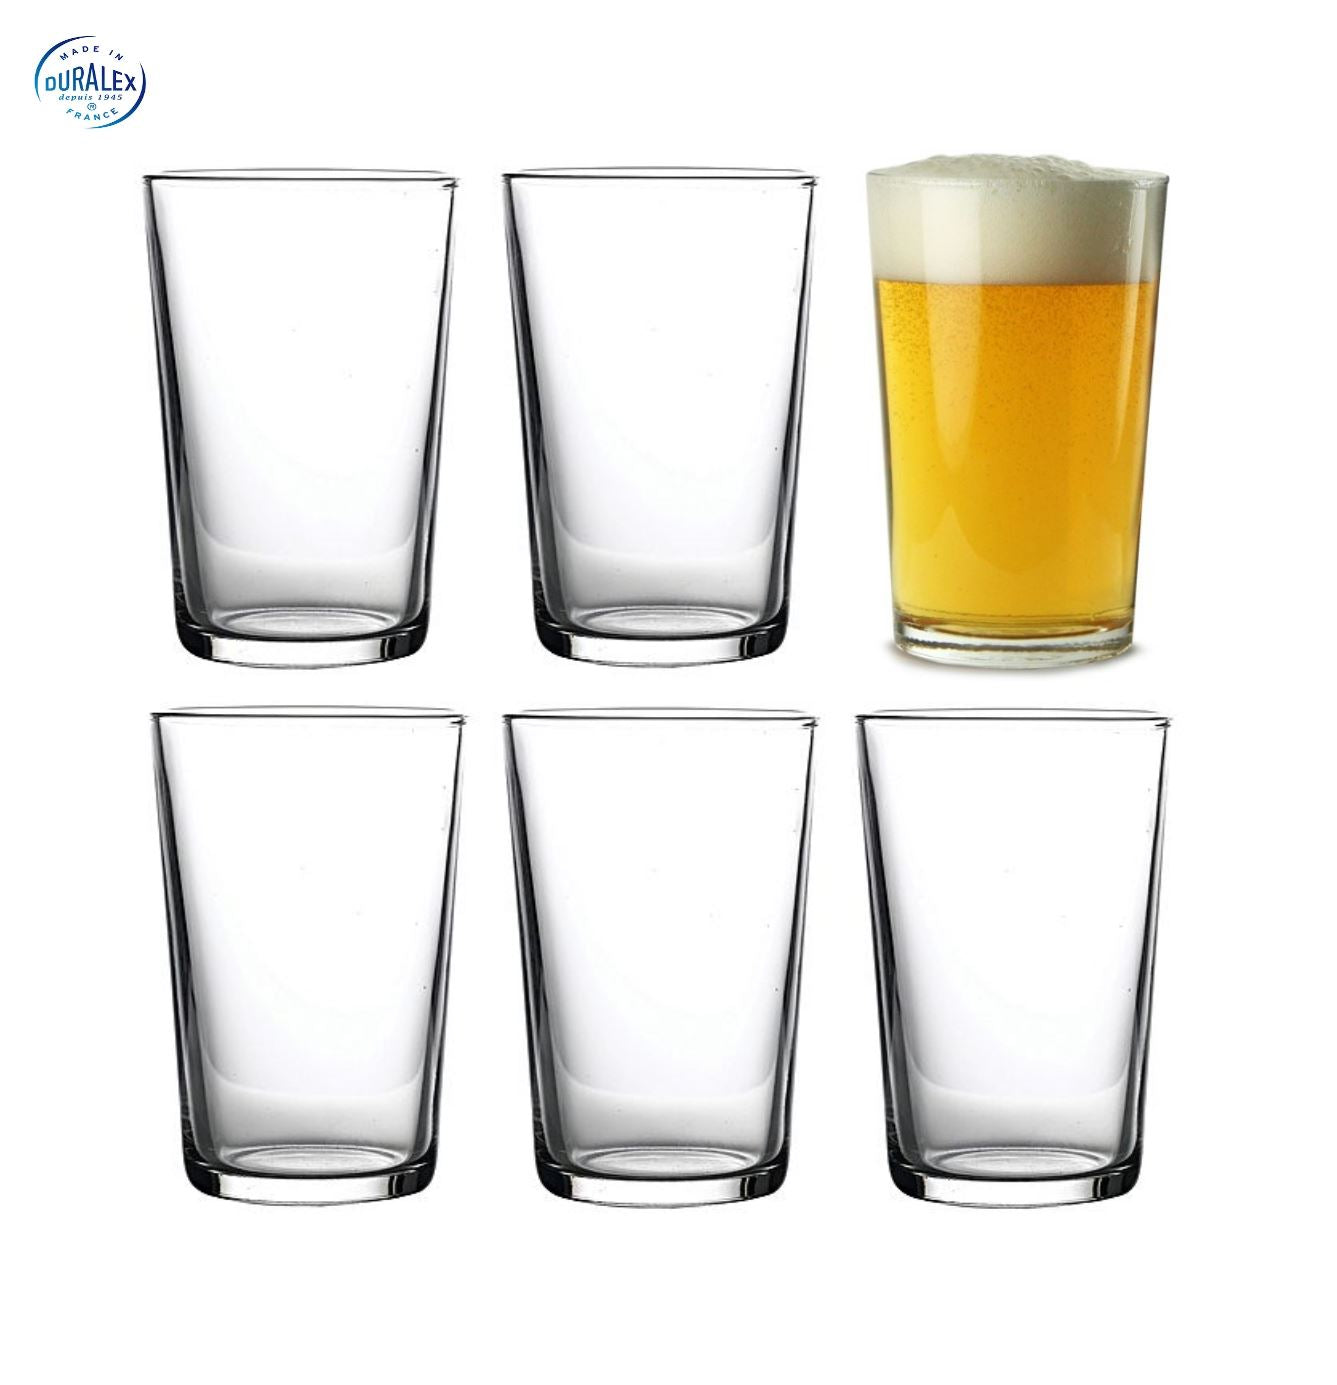 Duralex Half Pint Glass Pack Of 6 - lomasupply